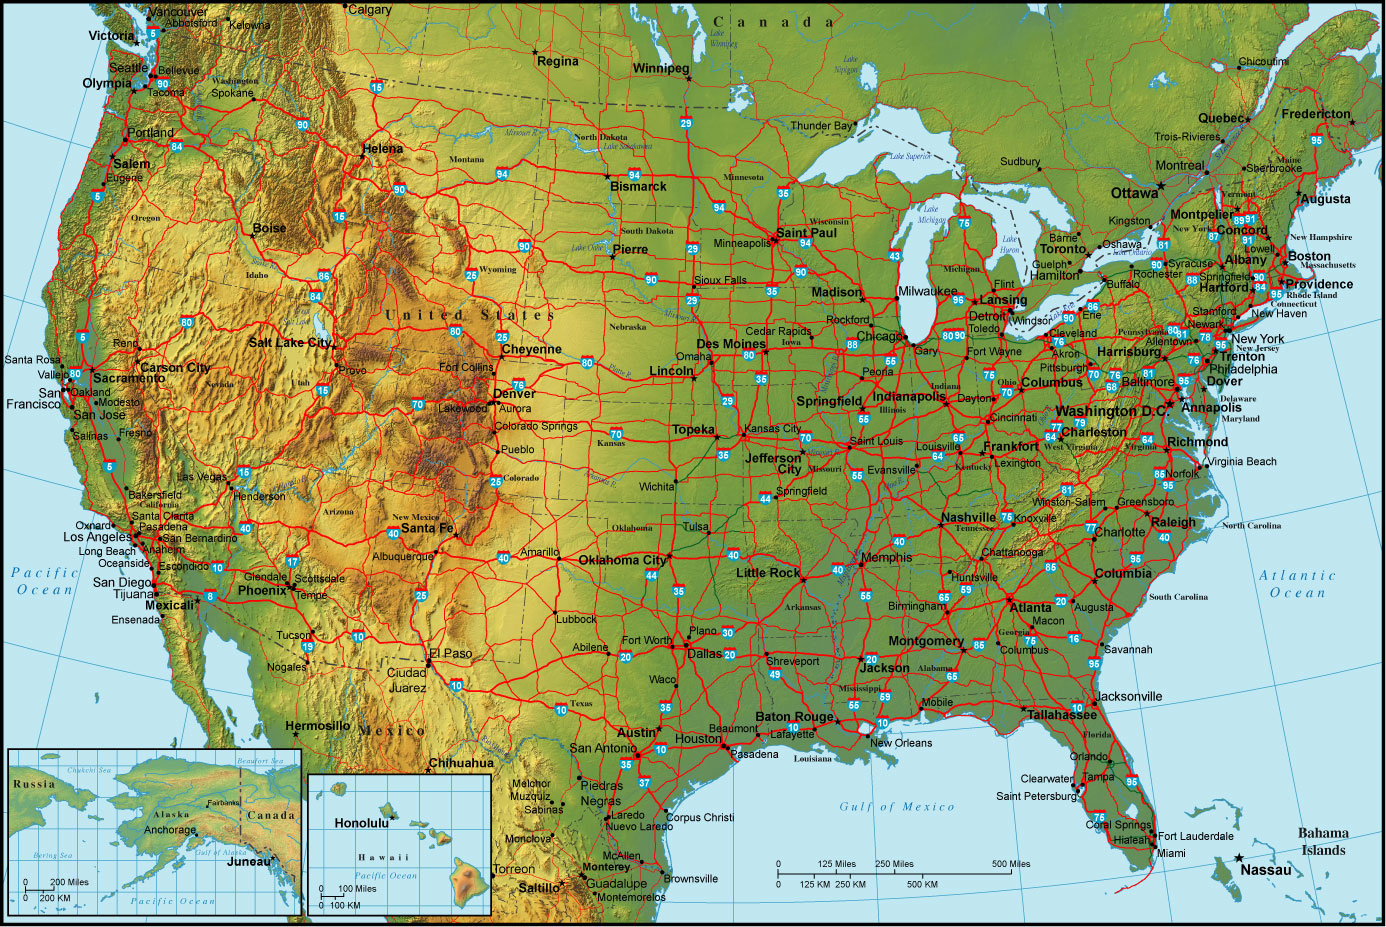 Detailed topographical map of the USA. The USA detailed ... on msp of us, detailed map eastern us, synonyms of us, airport of us, country of us, regions of us, outline of us, united states of us, weather of us, center of us, detailed us map printable, demographics of us, google maps of us, west coast of us, globe of us, east coast of us, language of us, geography of us, detailed maps of the united states,